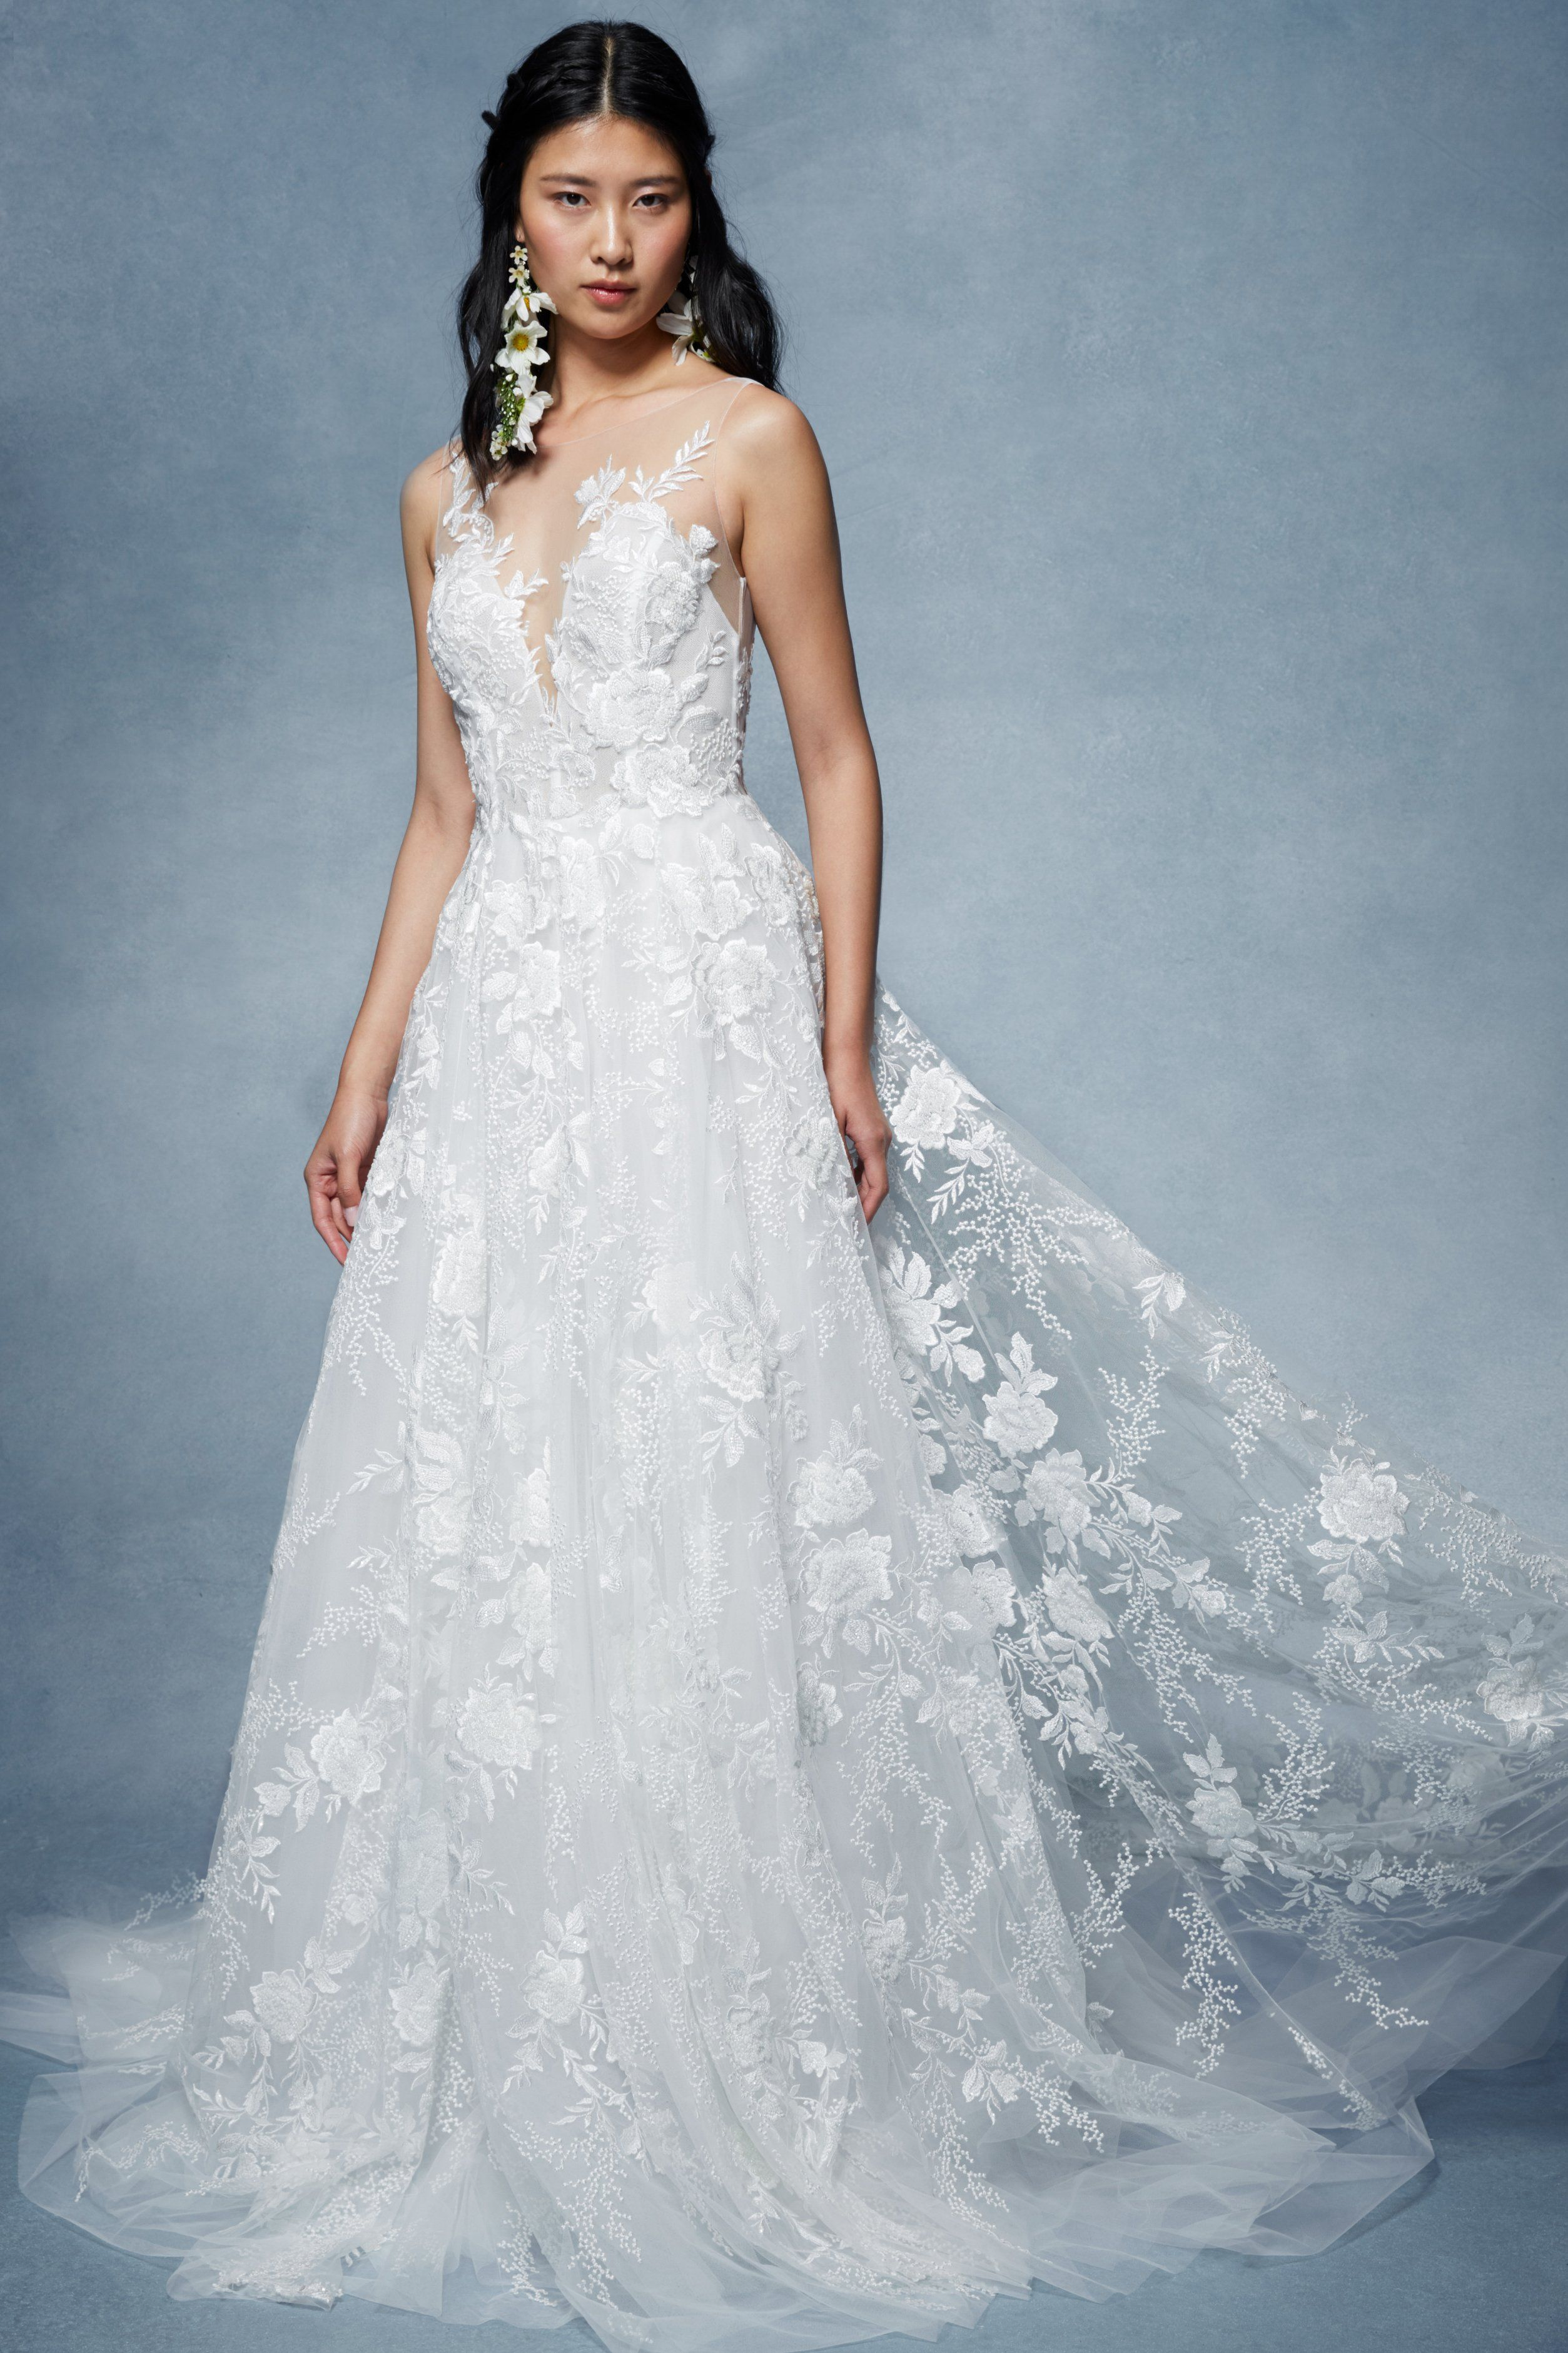 Marchesa In San Diego Coming Soon To The White Flower Wedding